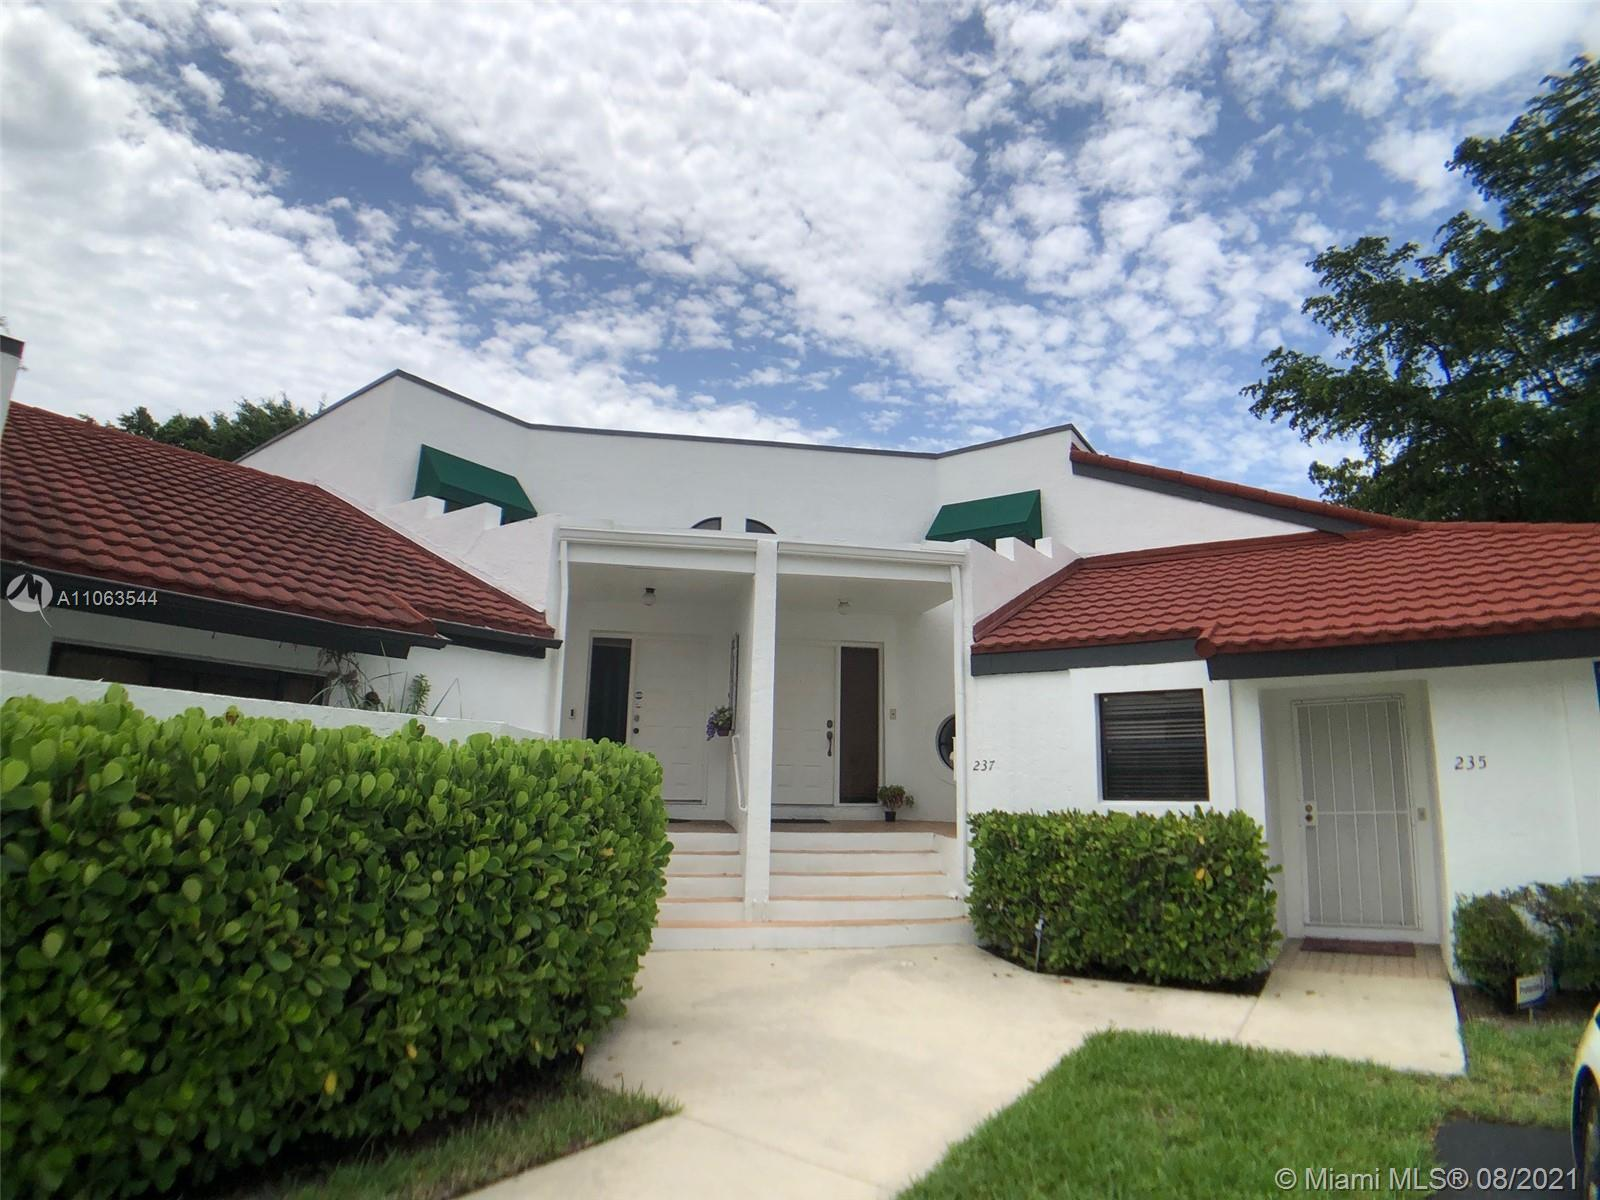 Charming 2/2, Two-story townhouse located in very desired Deer Pointe community, just one block from